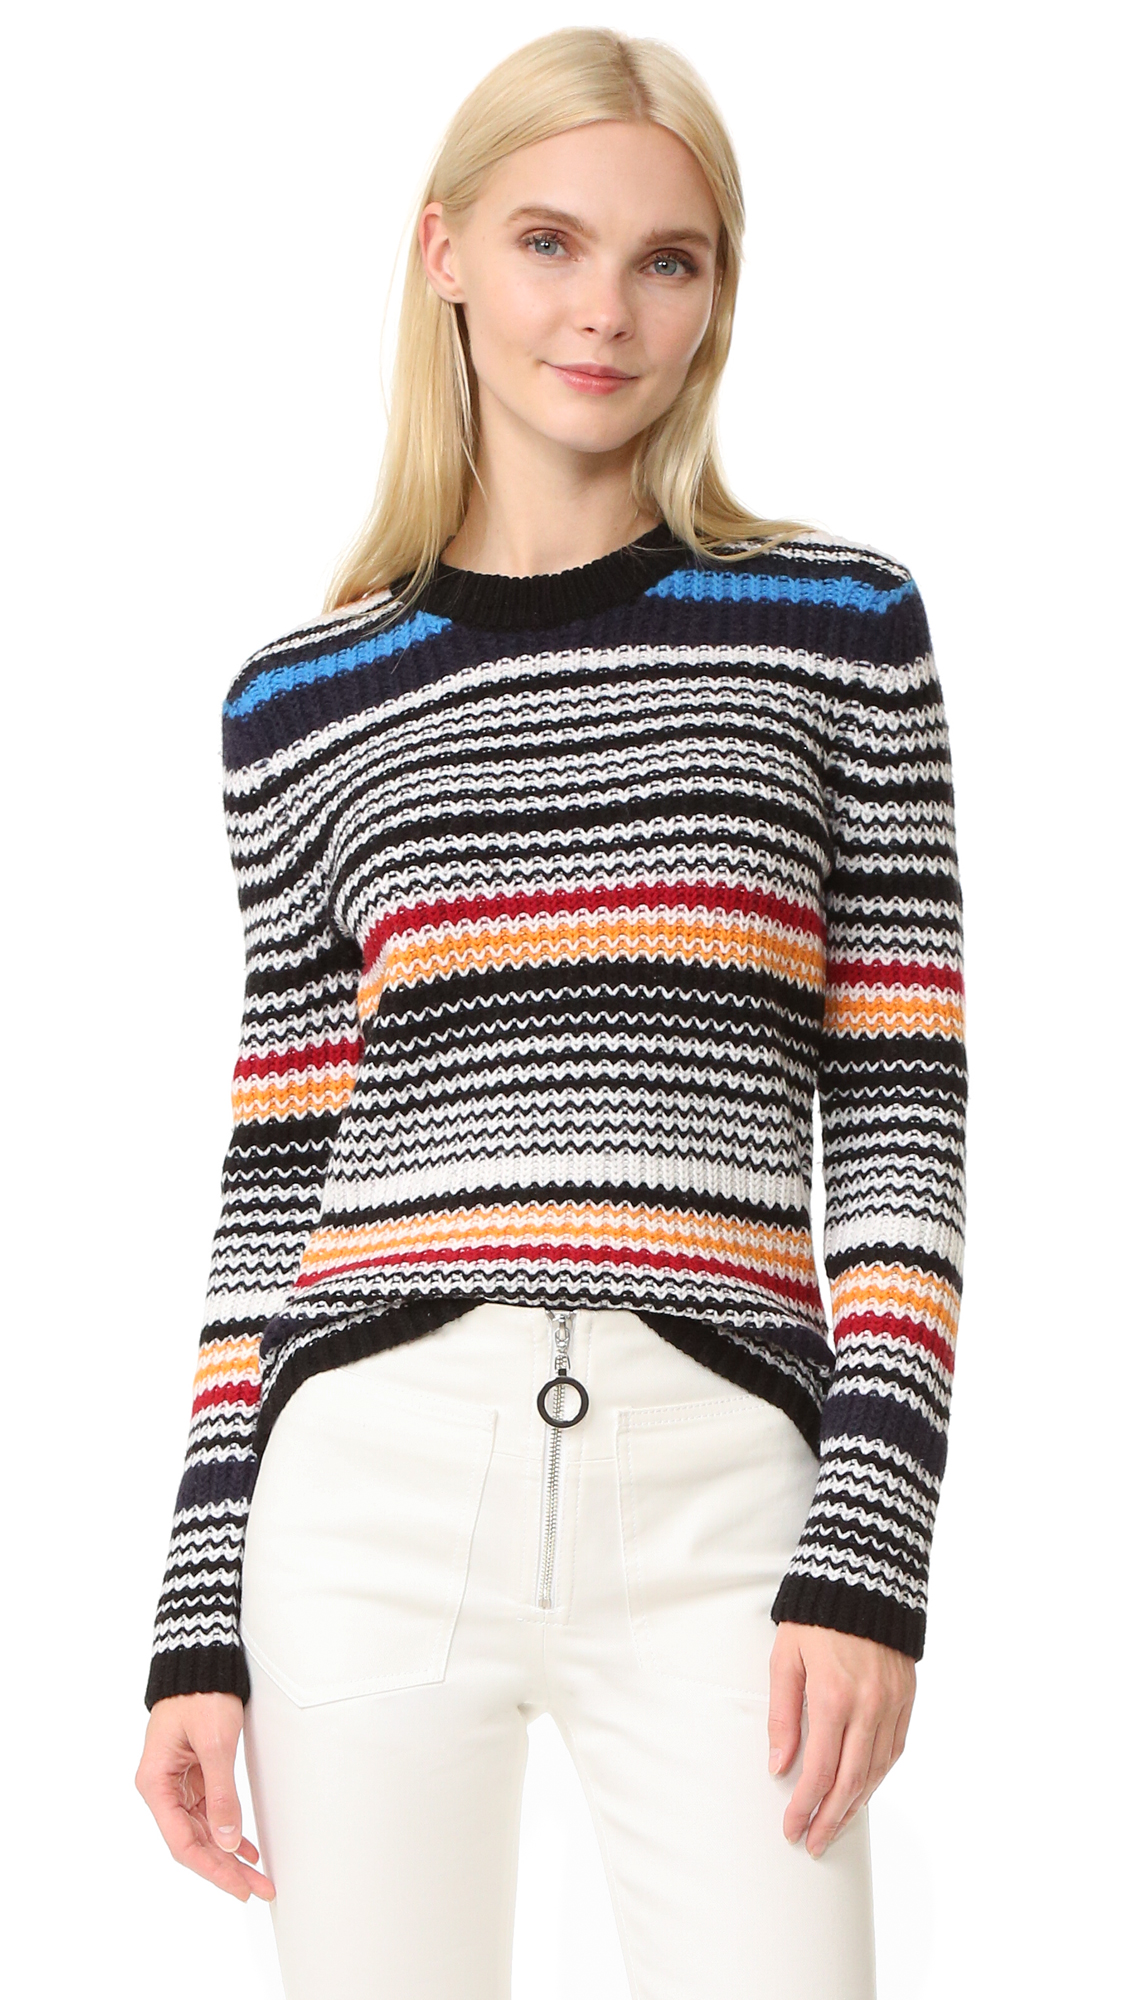 Edun Multistripe Pullover Sweater - Multi Stripe at Shopbop